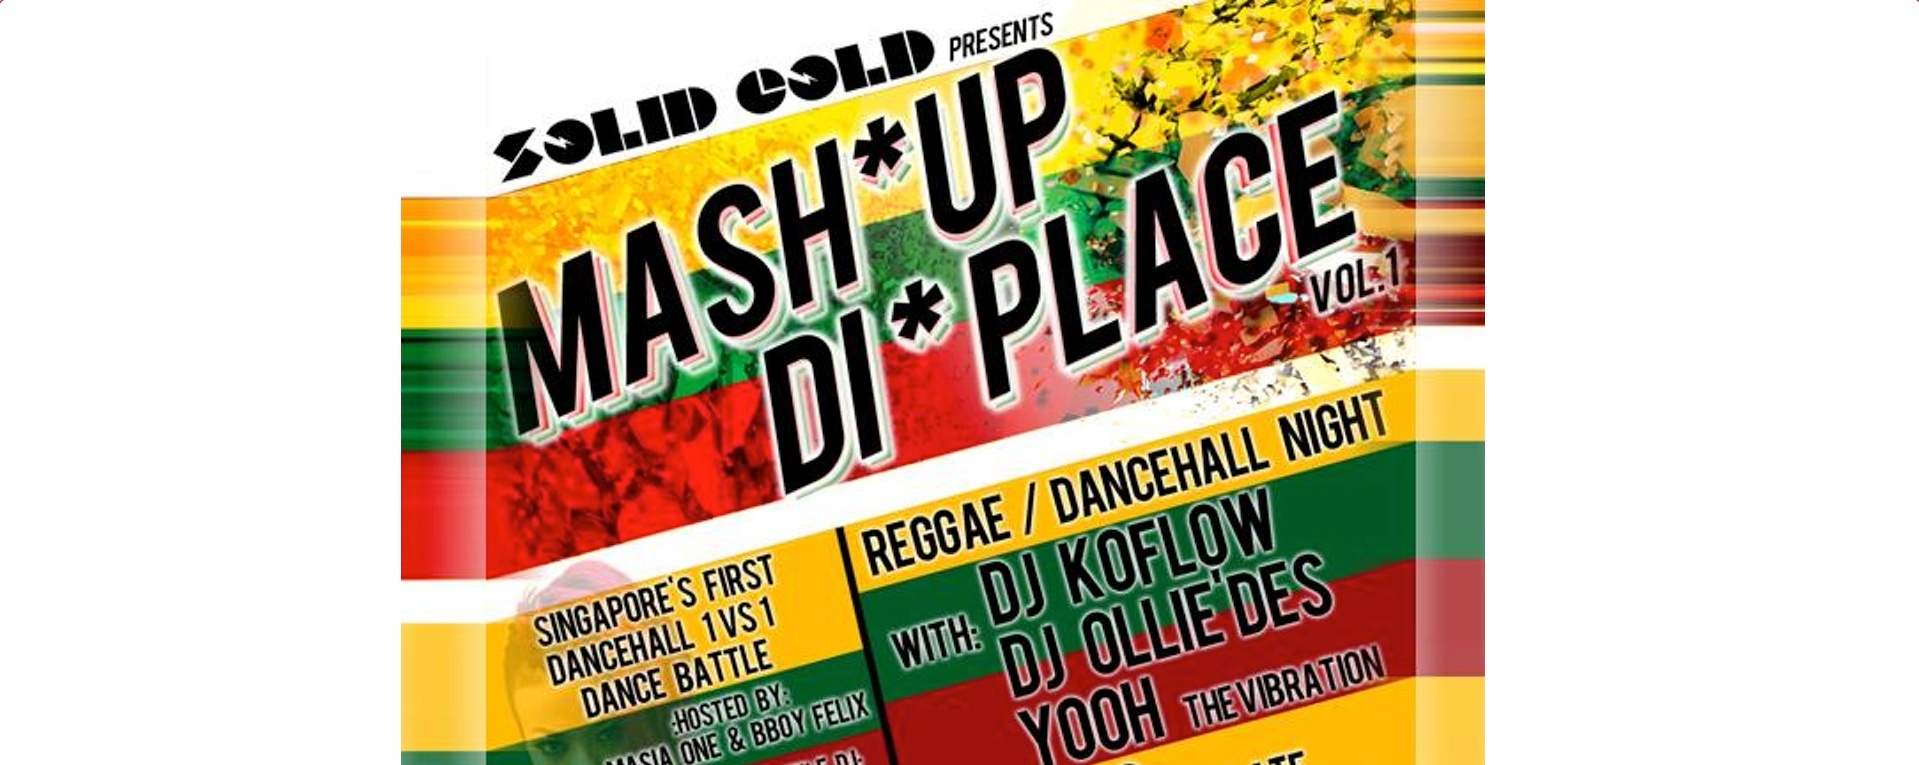 Solid Gold: Dancehall Edition